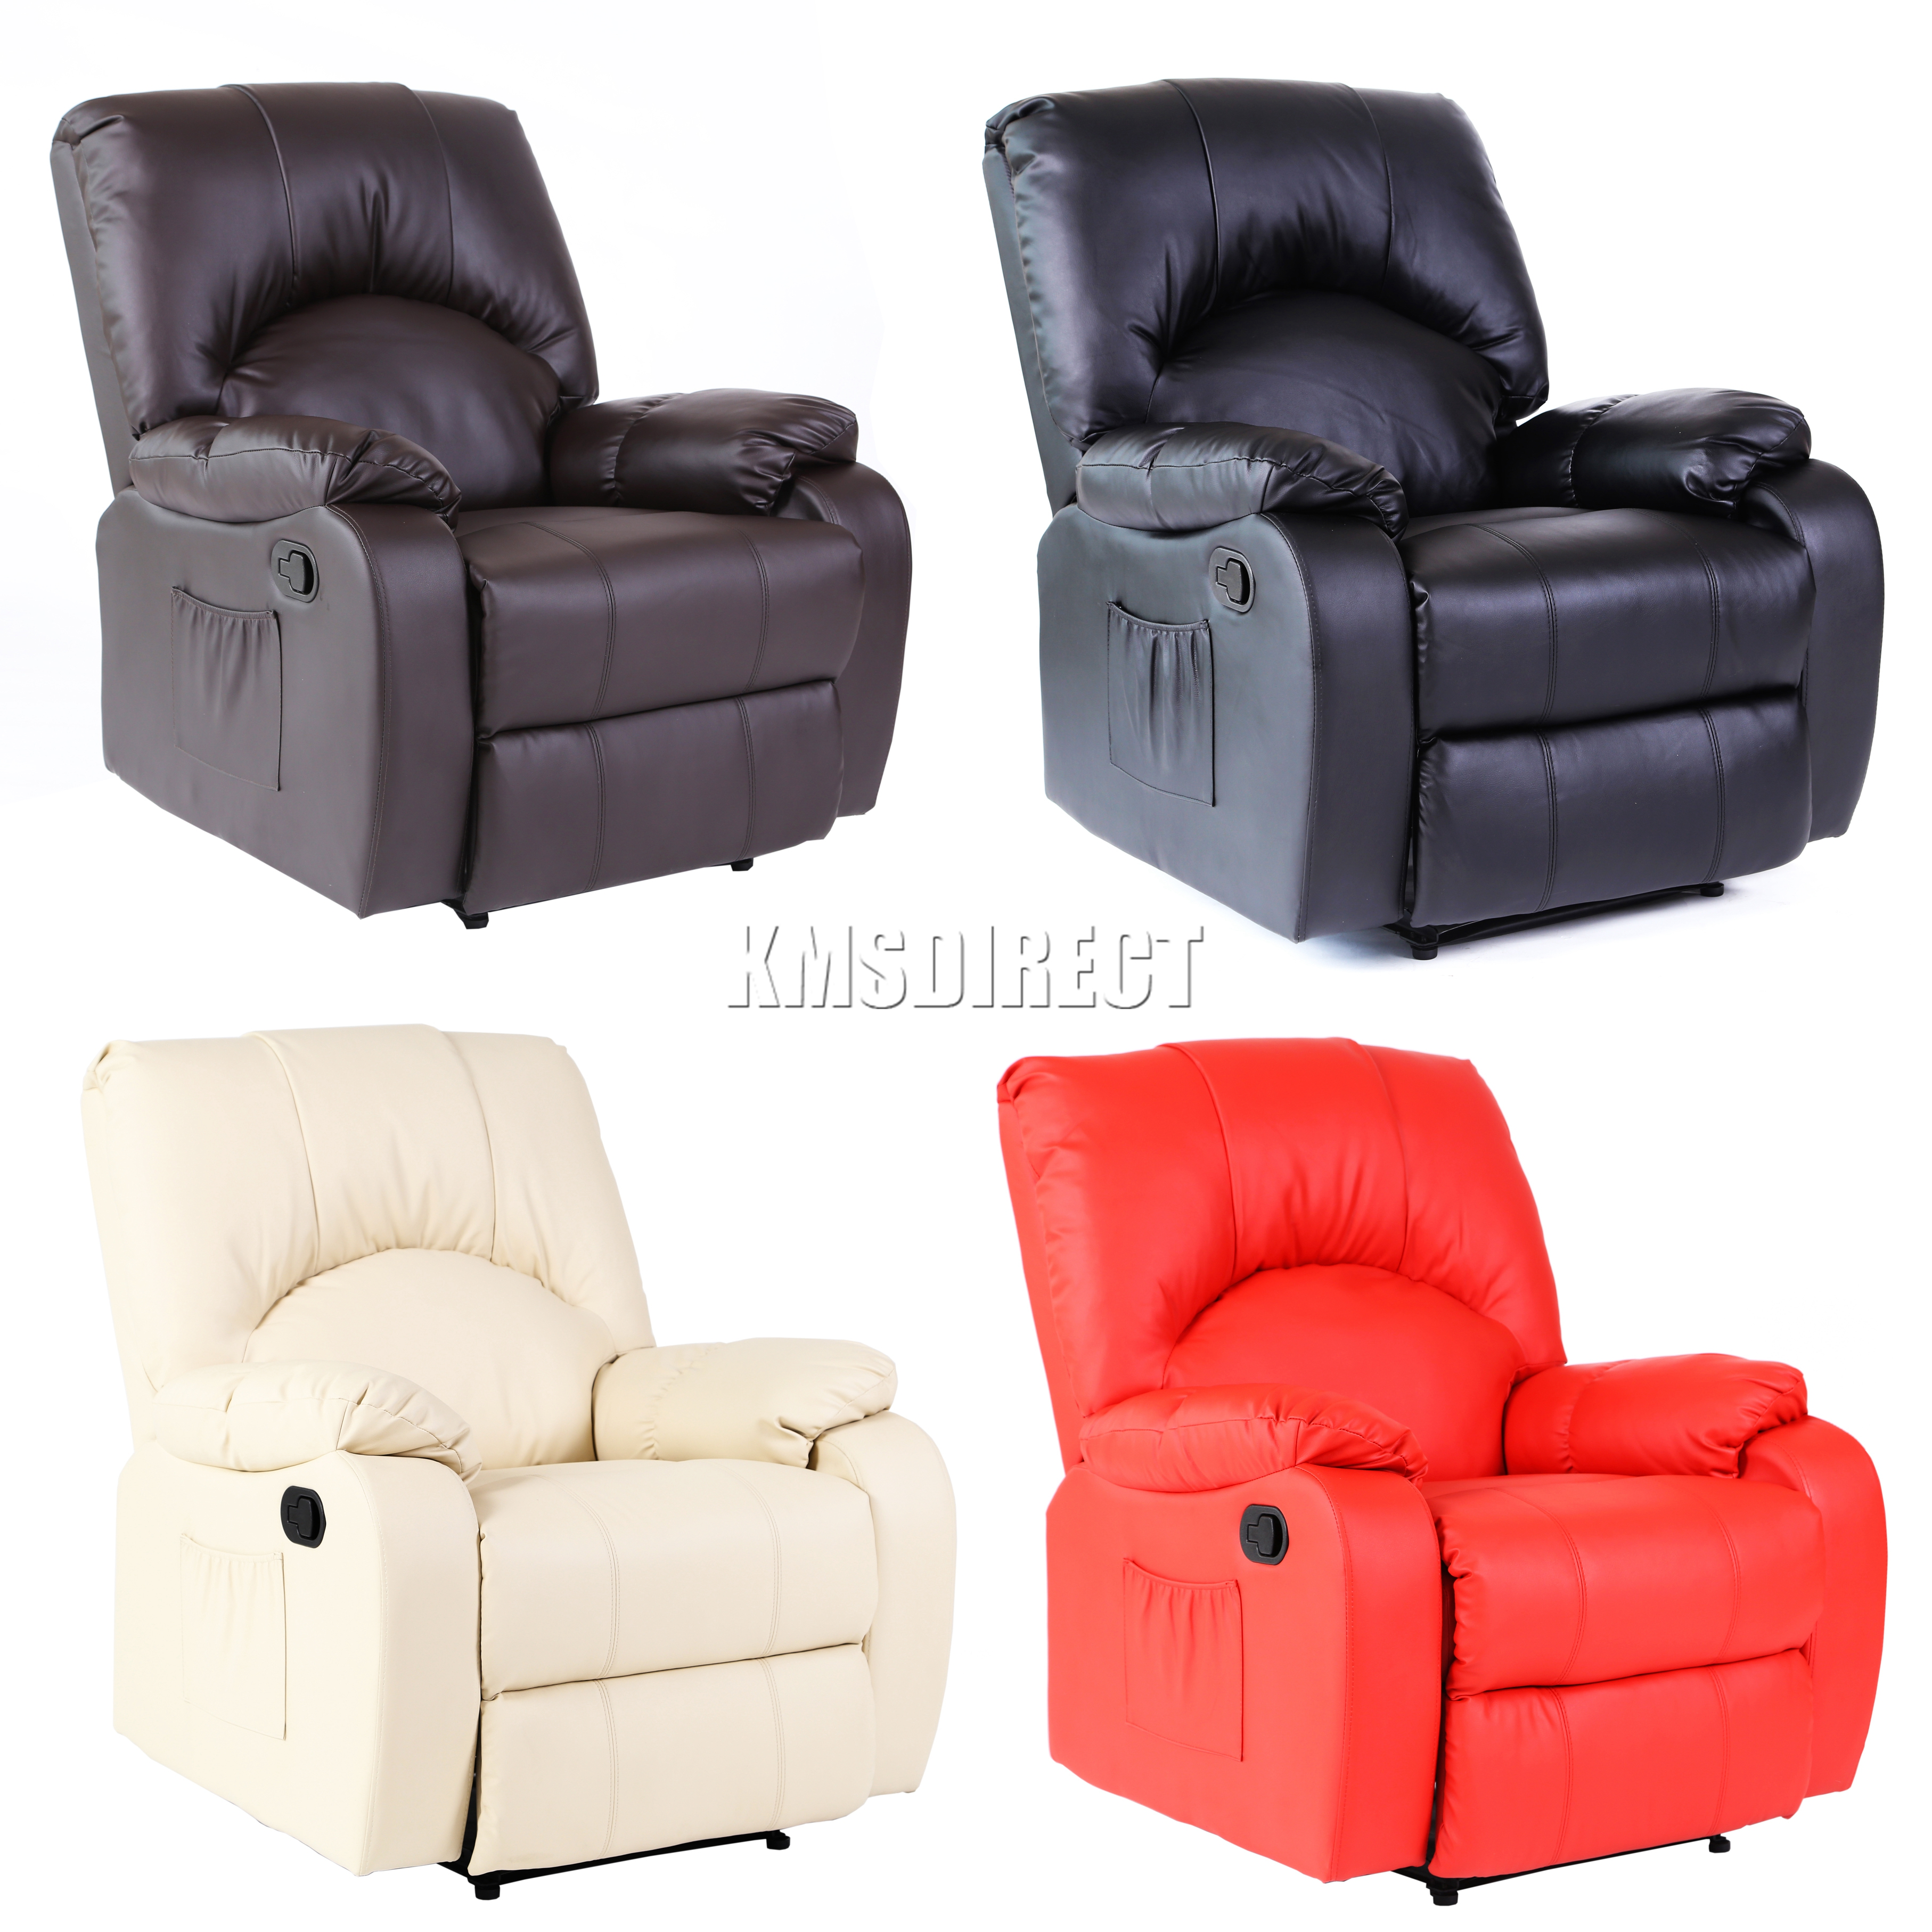 foxhunter cuir massage cinema fauteuil inclinable canap chauffant mls 03 neuf. Black Bedroom Furniture Sets. Home Design Ideas